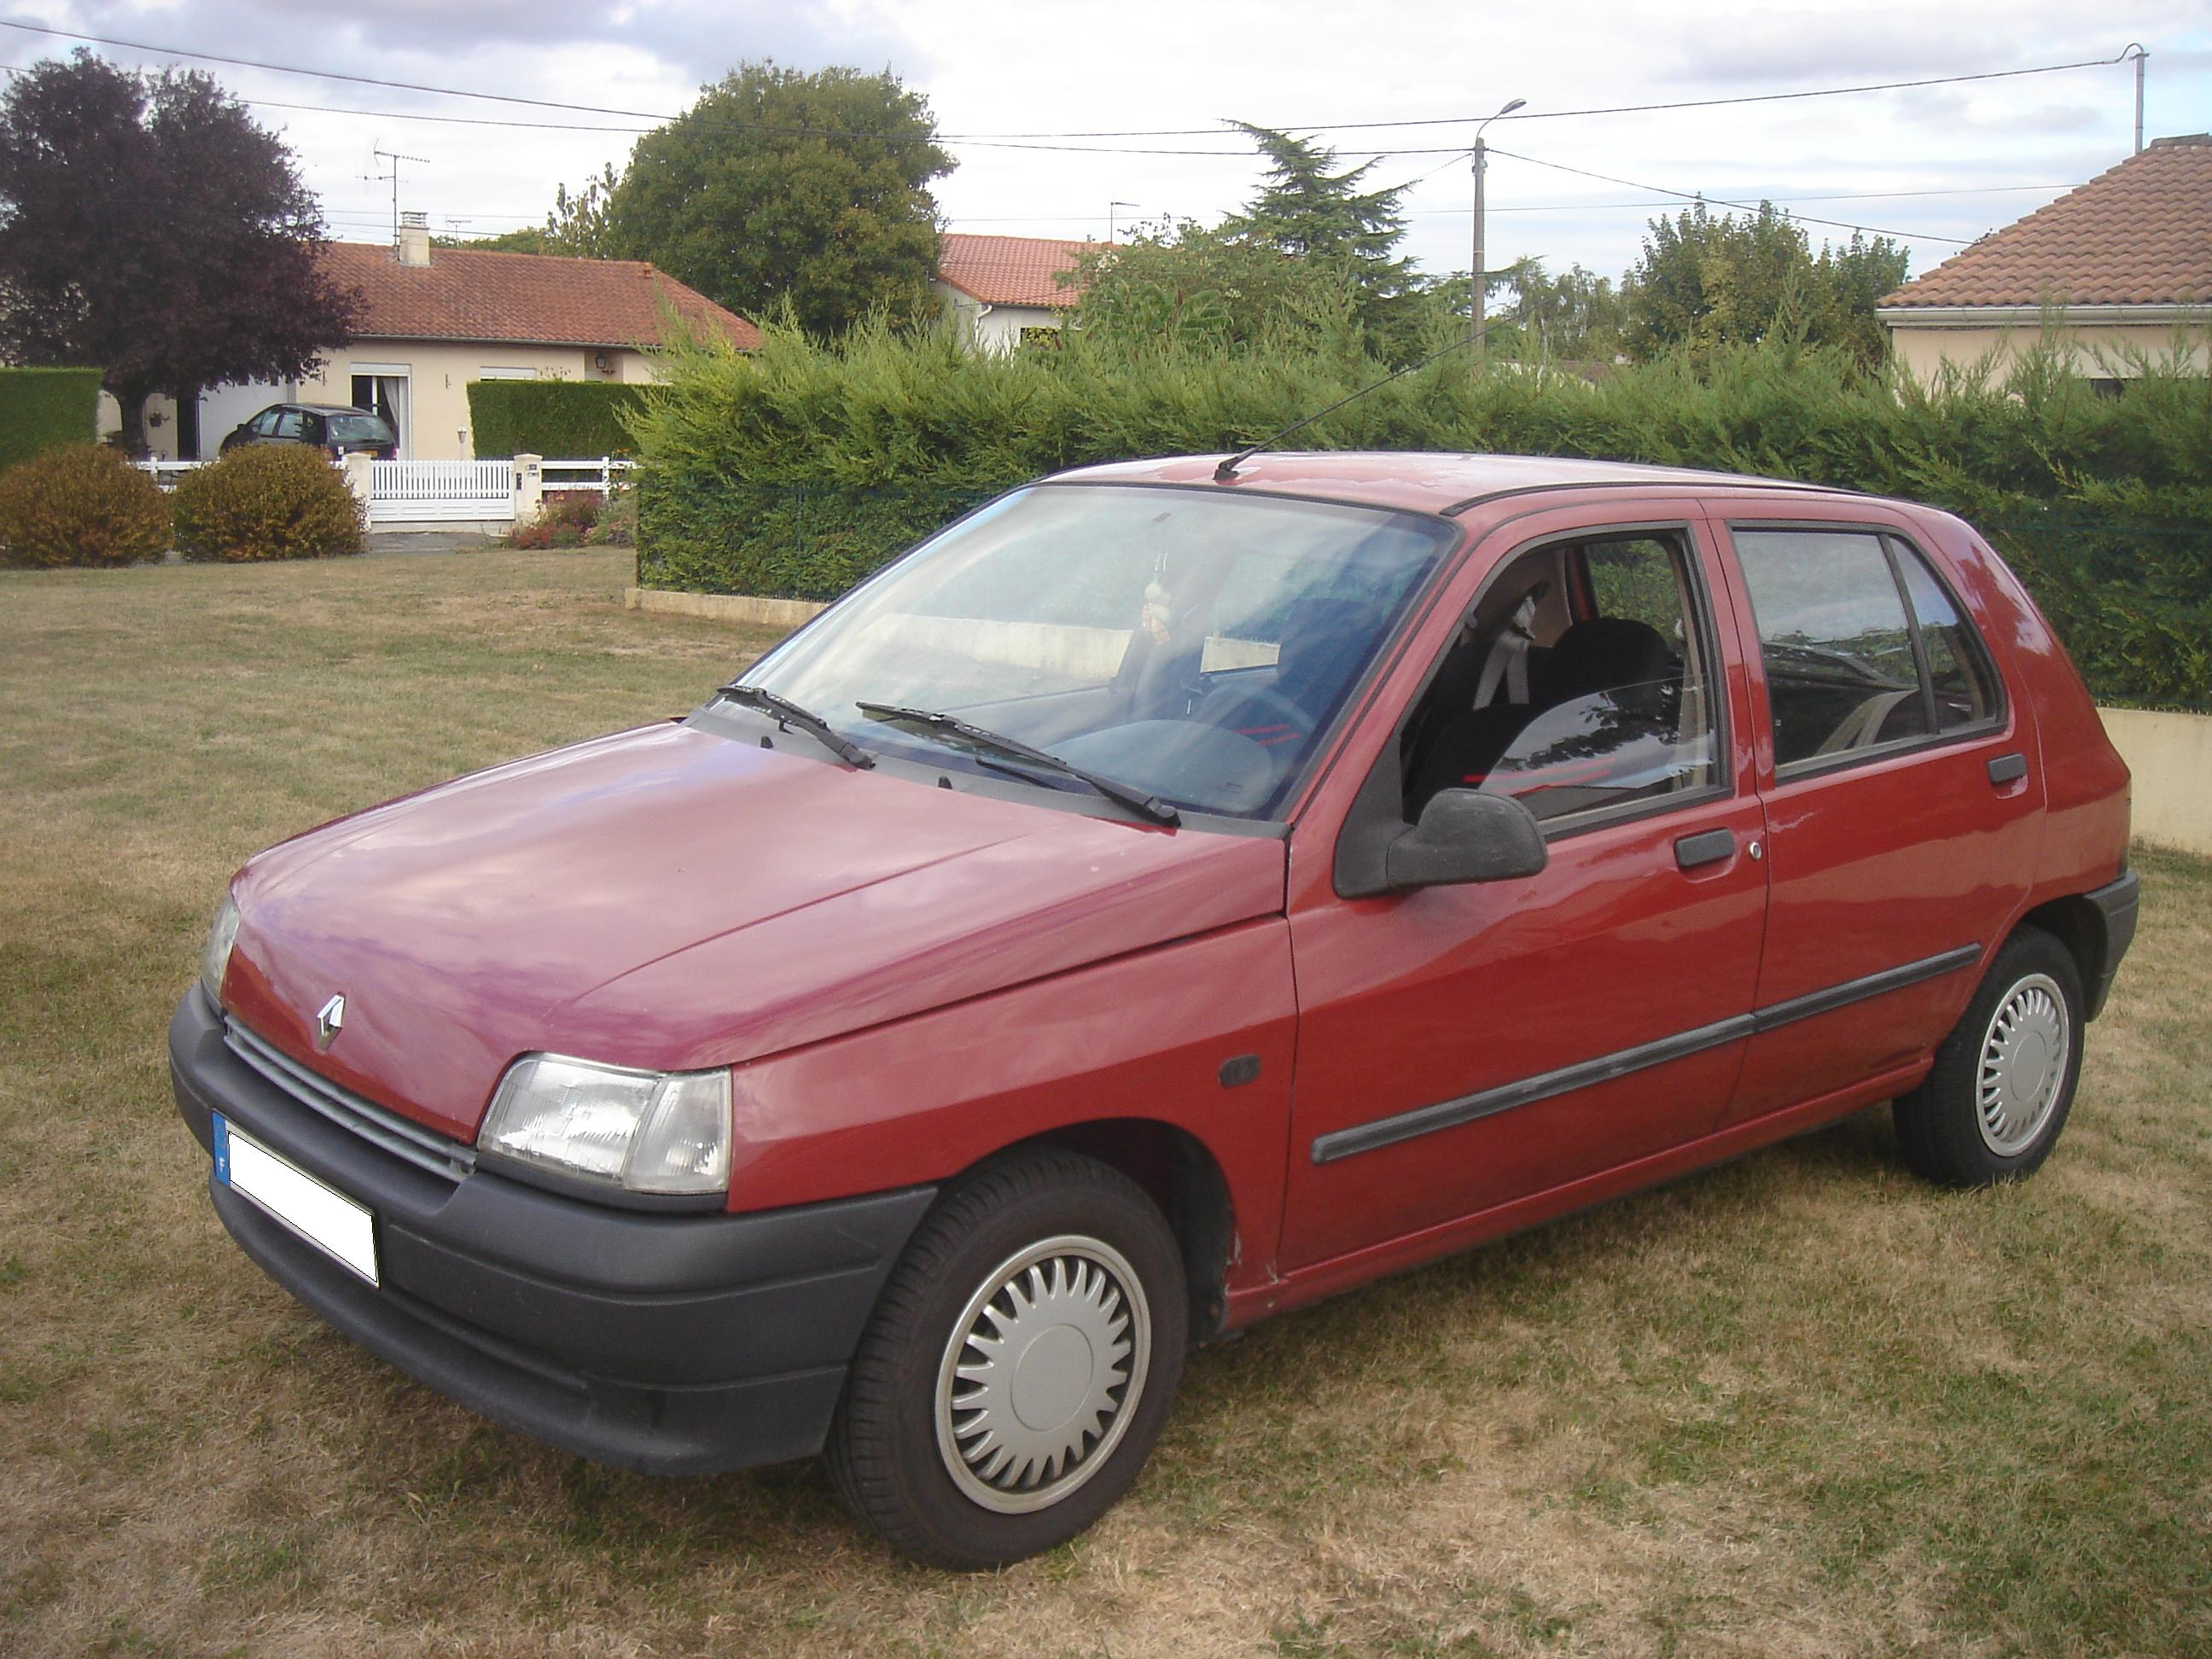 1990 Renault Clio 1.7 RT 5 door photo - 1